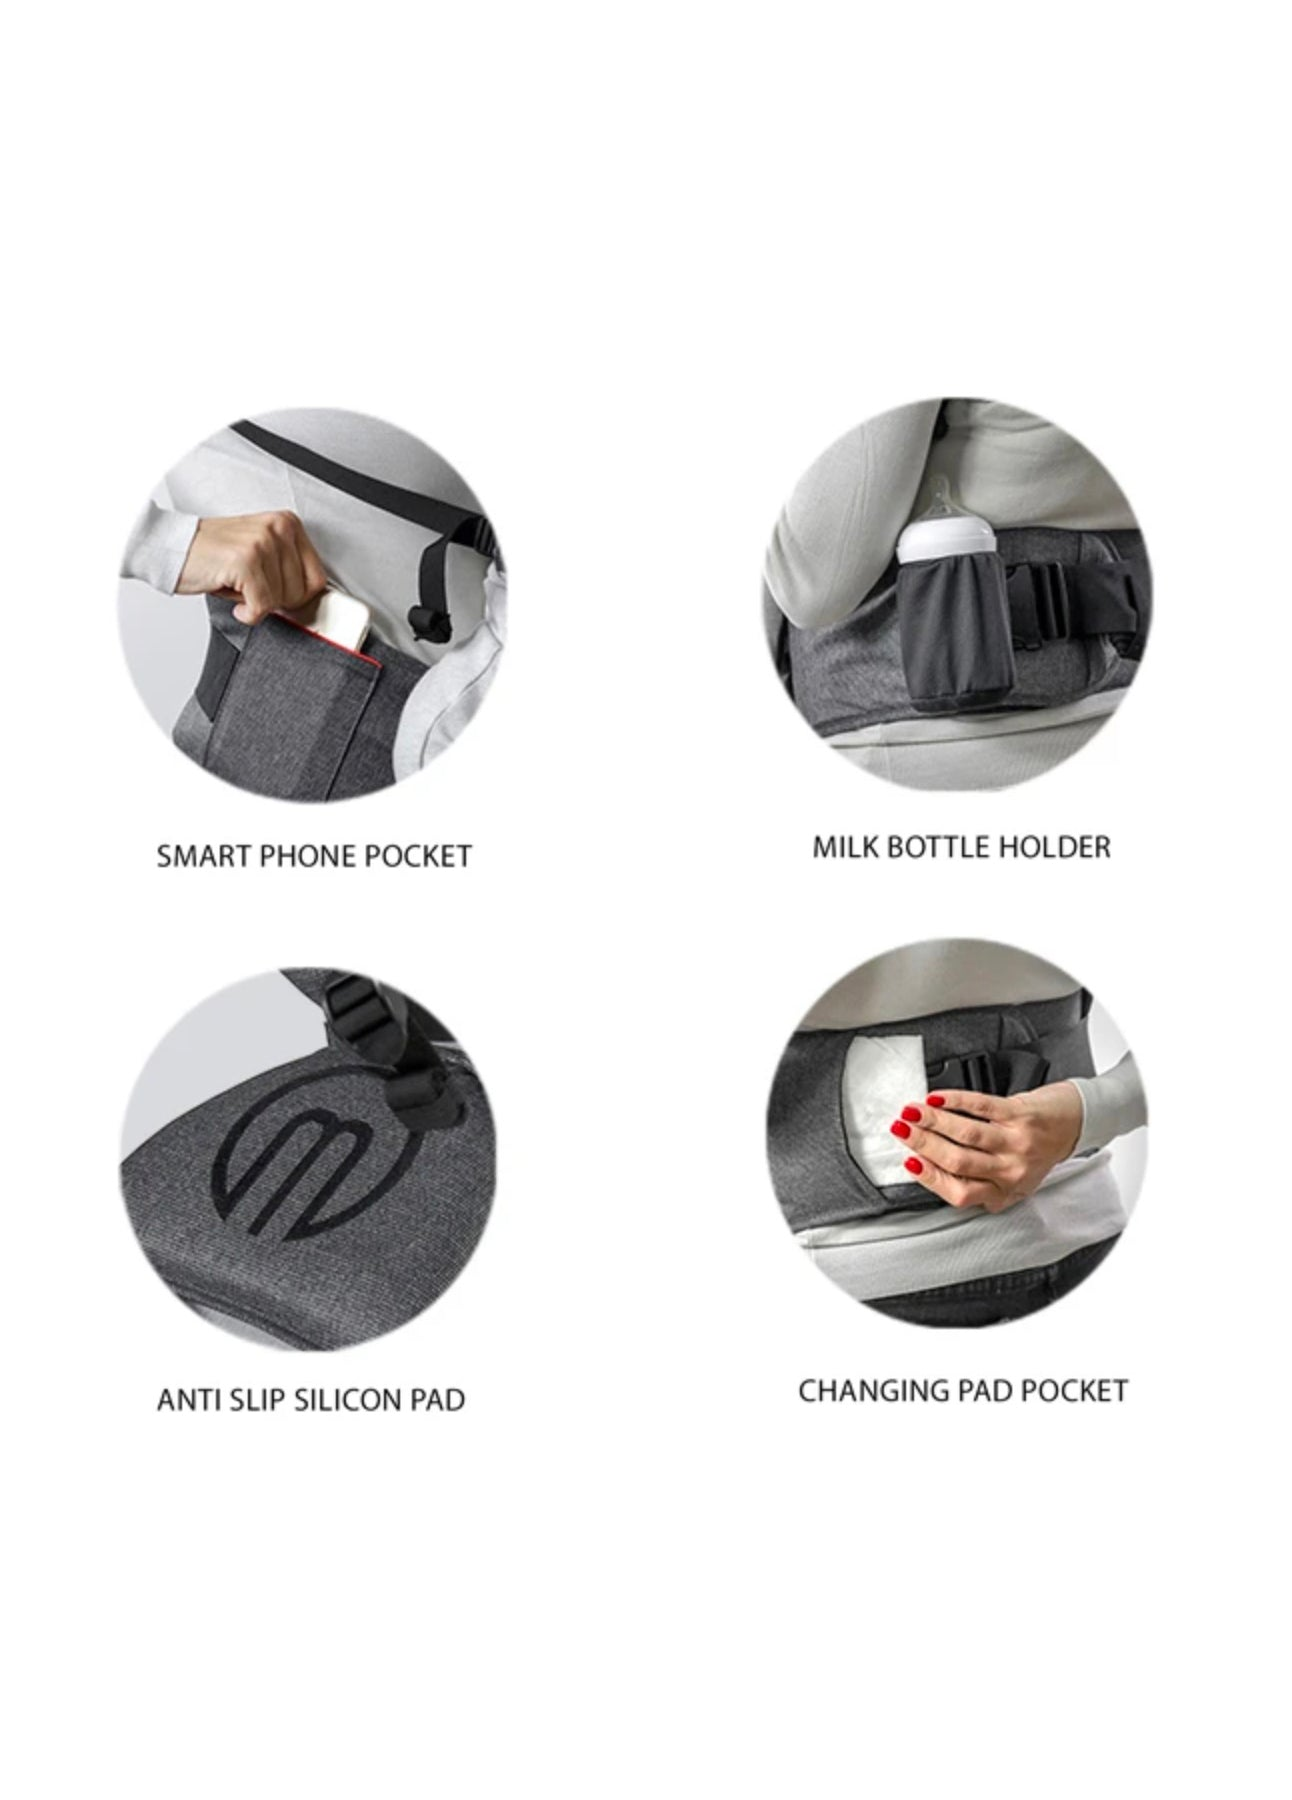 HIPSTER™ SMART 3D Baby Carrier features 3